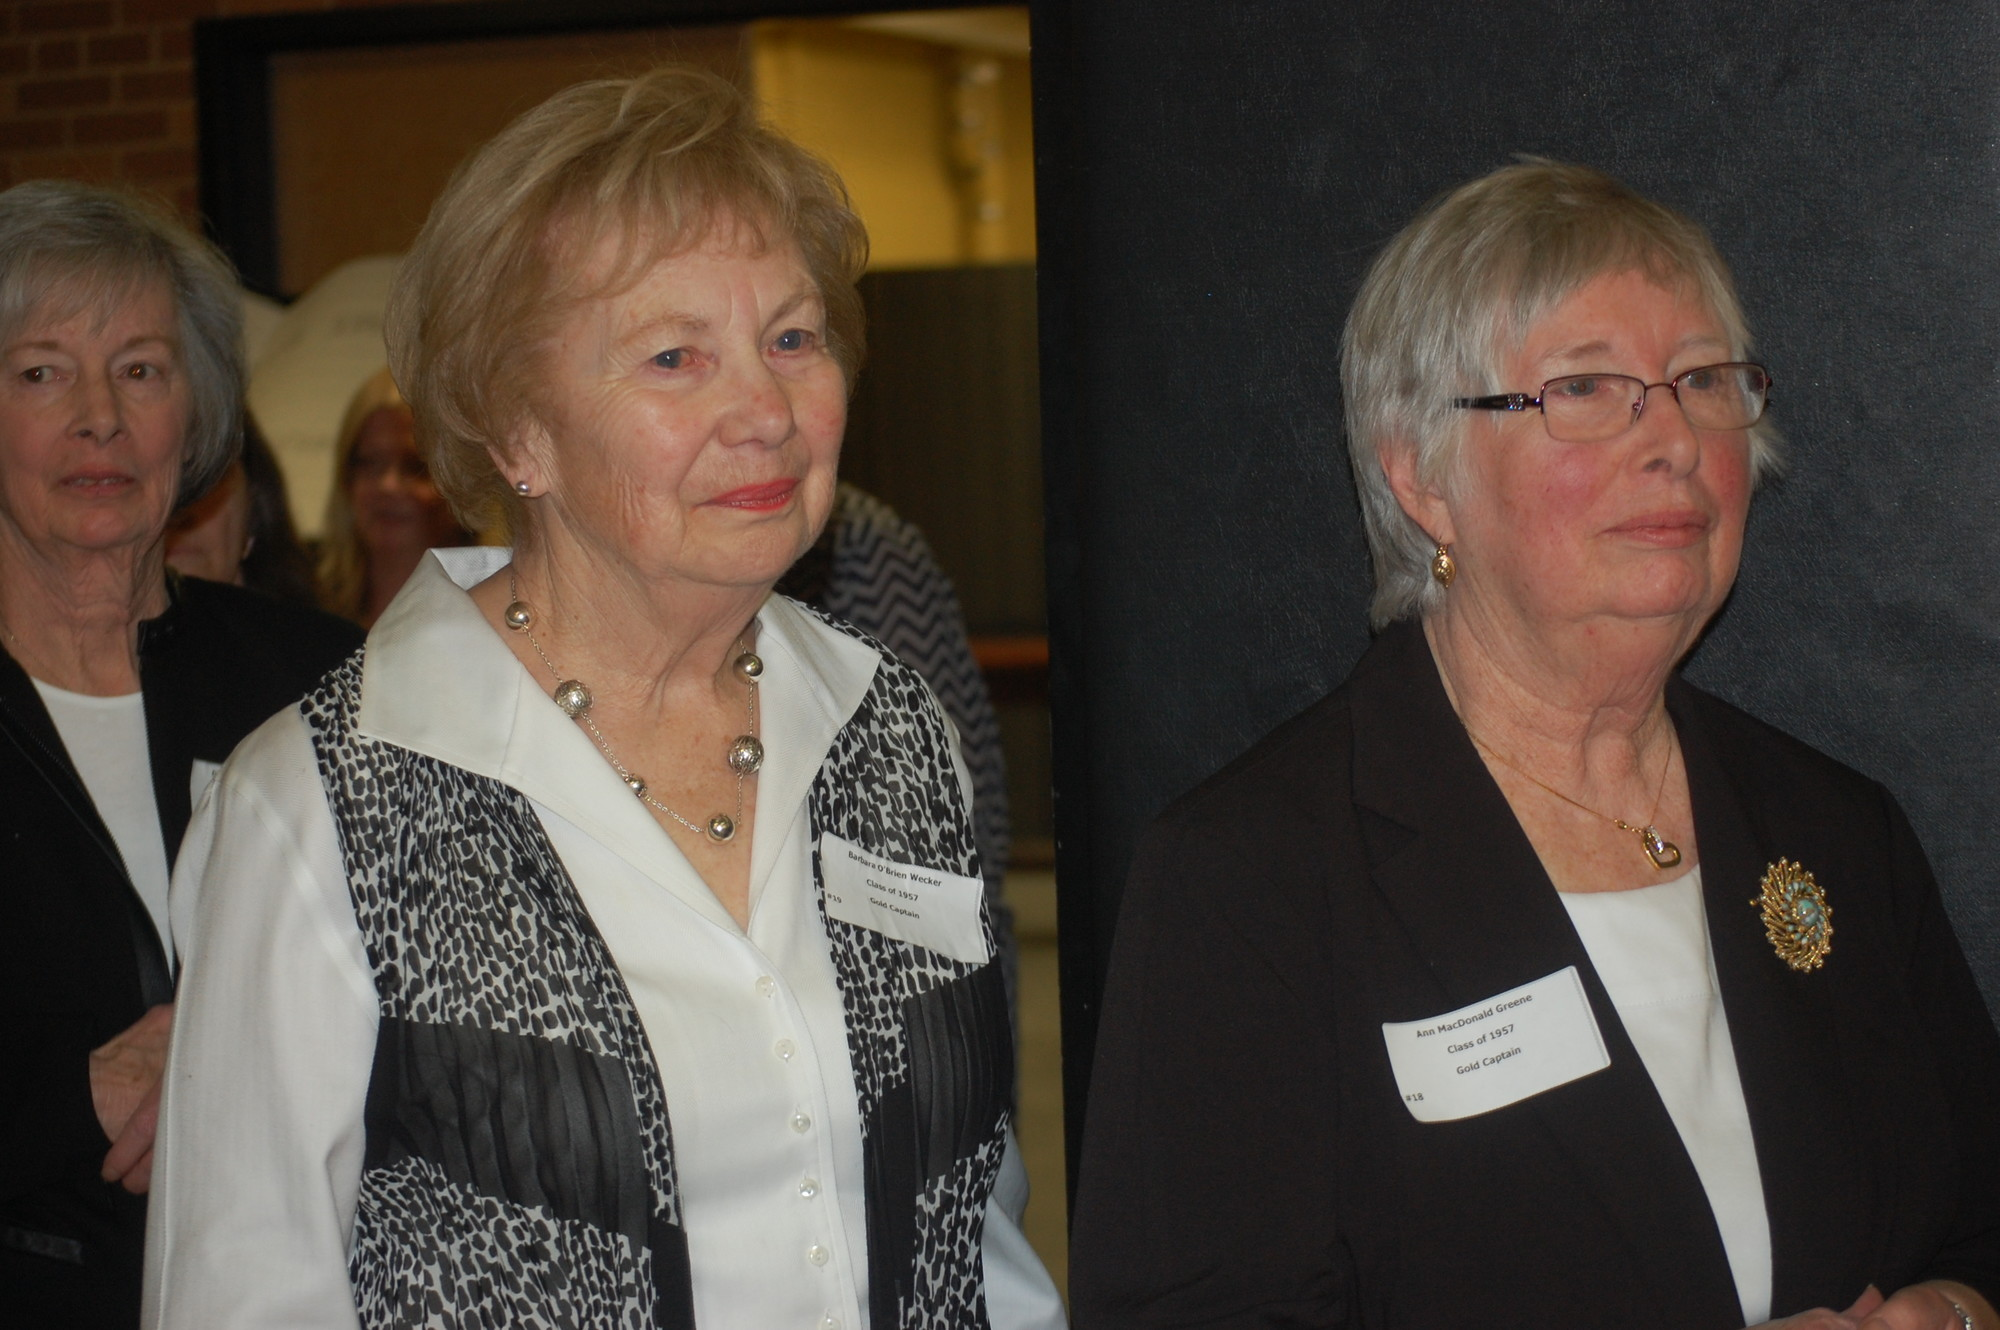 Barbara Wecker, left, and Ann Greene were captains of the 1957 Gold team.